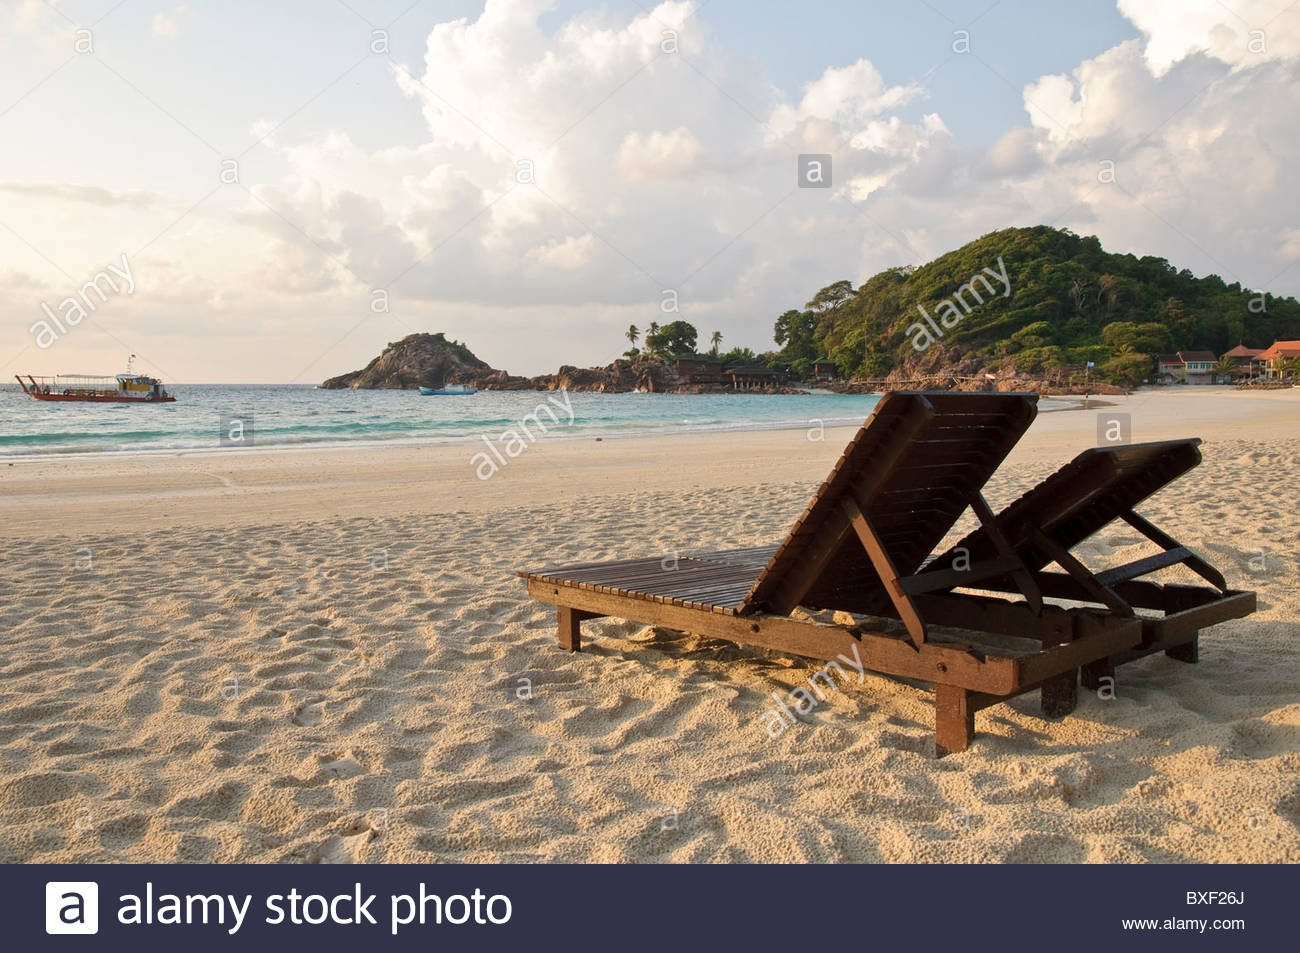 Beach with sun loungers in the morning, Pulau Redang island, Malaysia, Southeast Asia, Asia Stock Photo